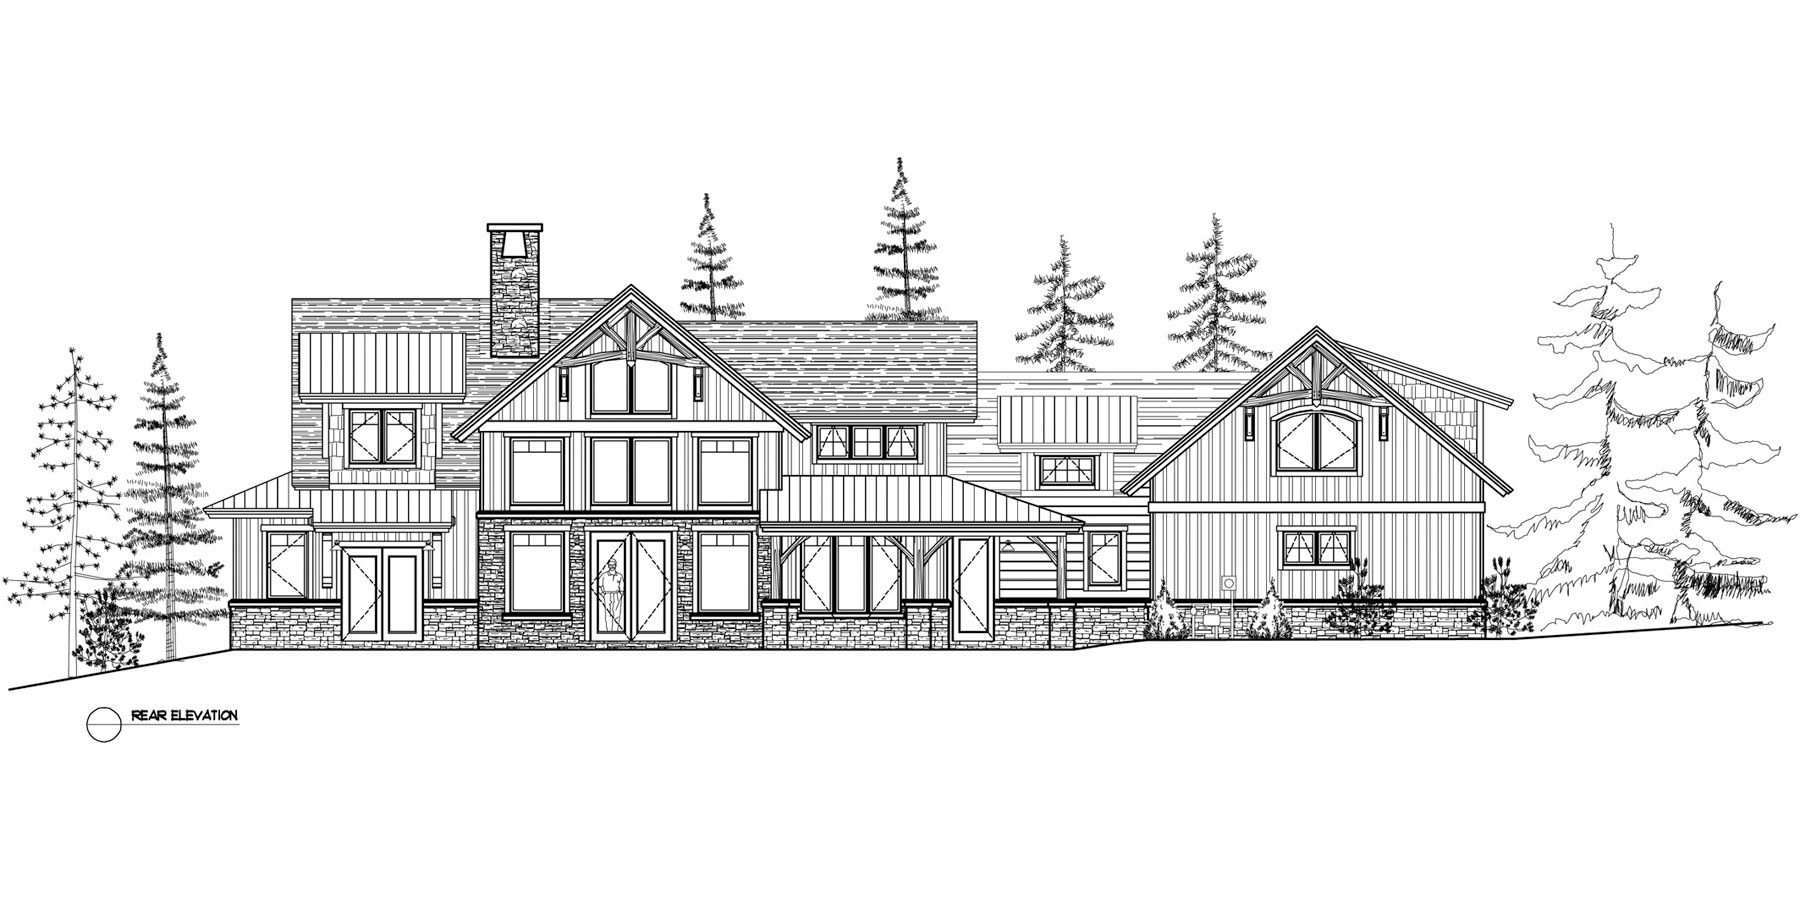 Normerica Timber Frames, House Plan, The Dufferin 3512, Rear Elevation